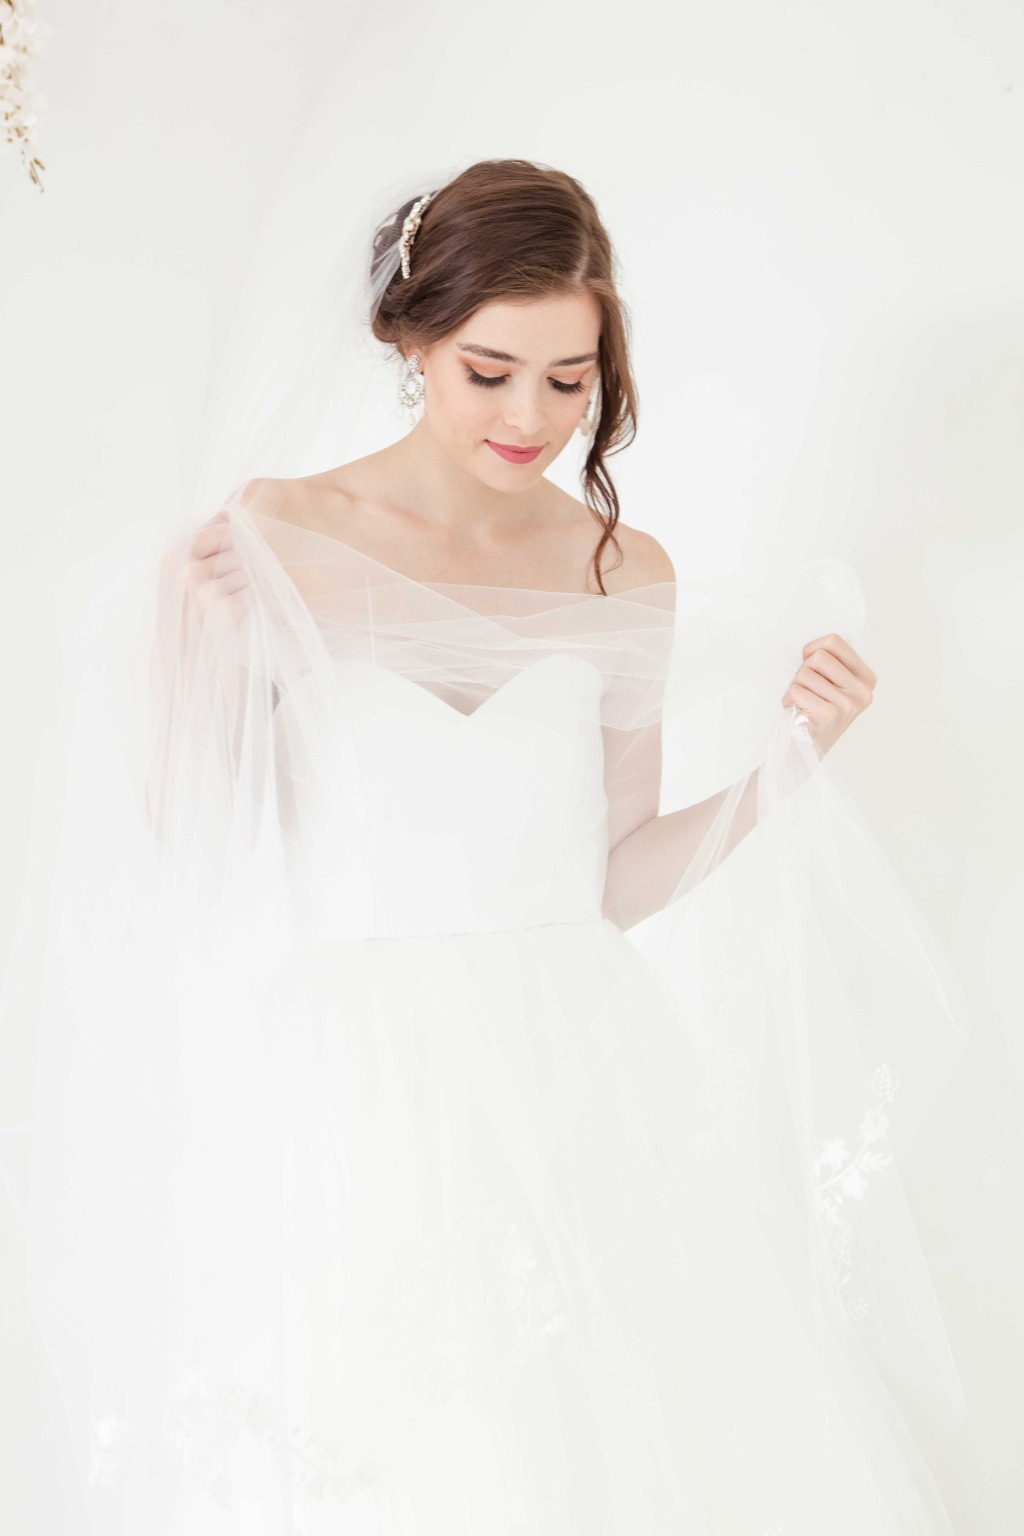 Explore more gorgeous wedding veil from Laura Jayne!